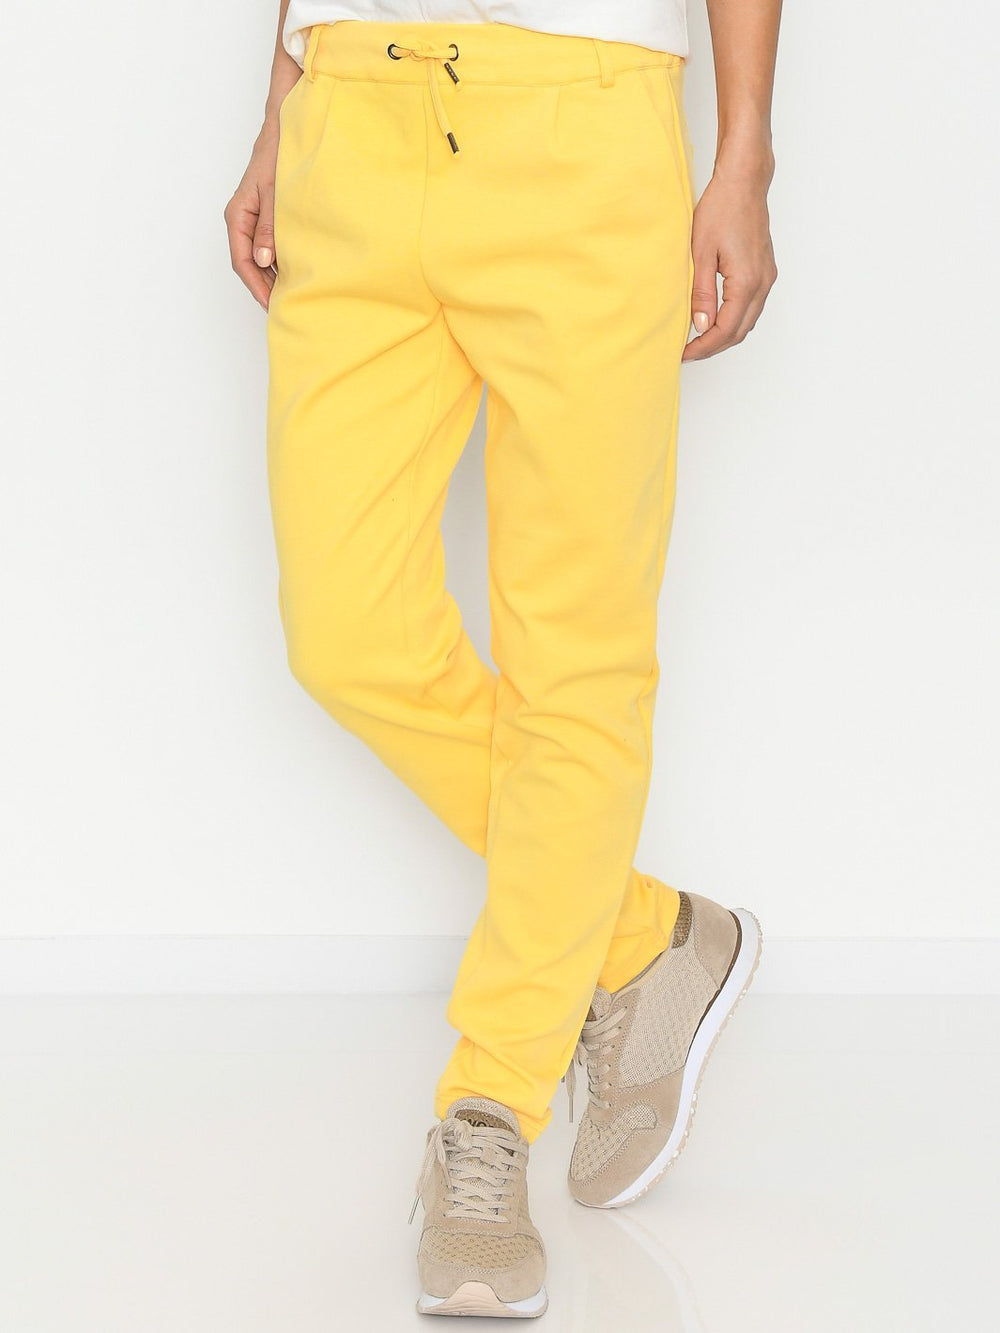 Marc Lauge Joda pants sunflower - Online-Mode